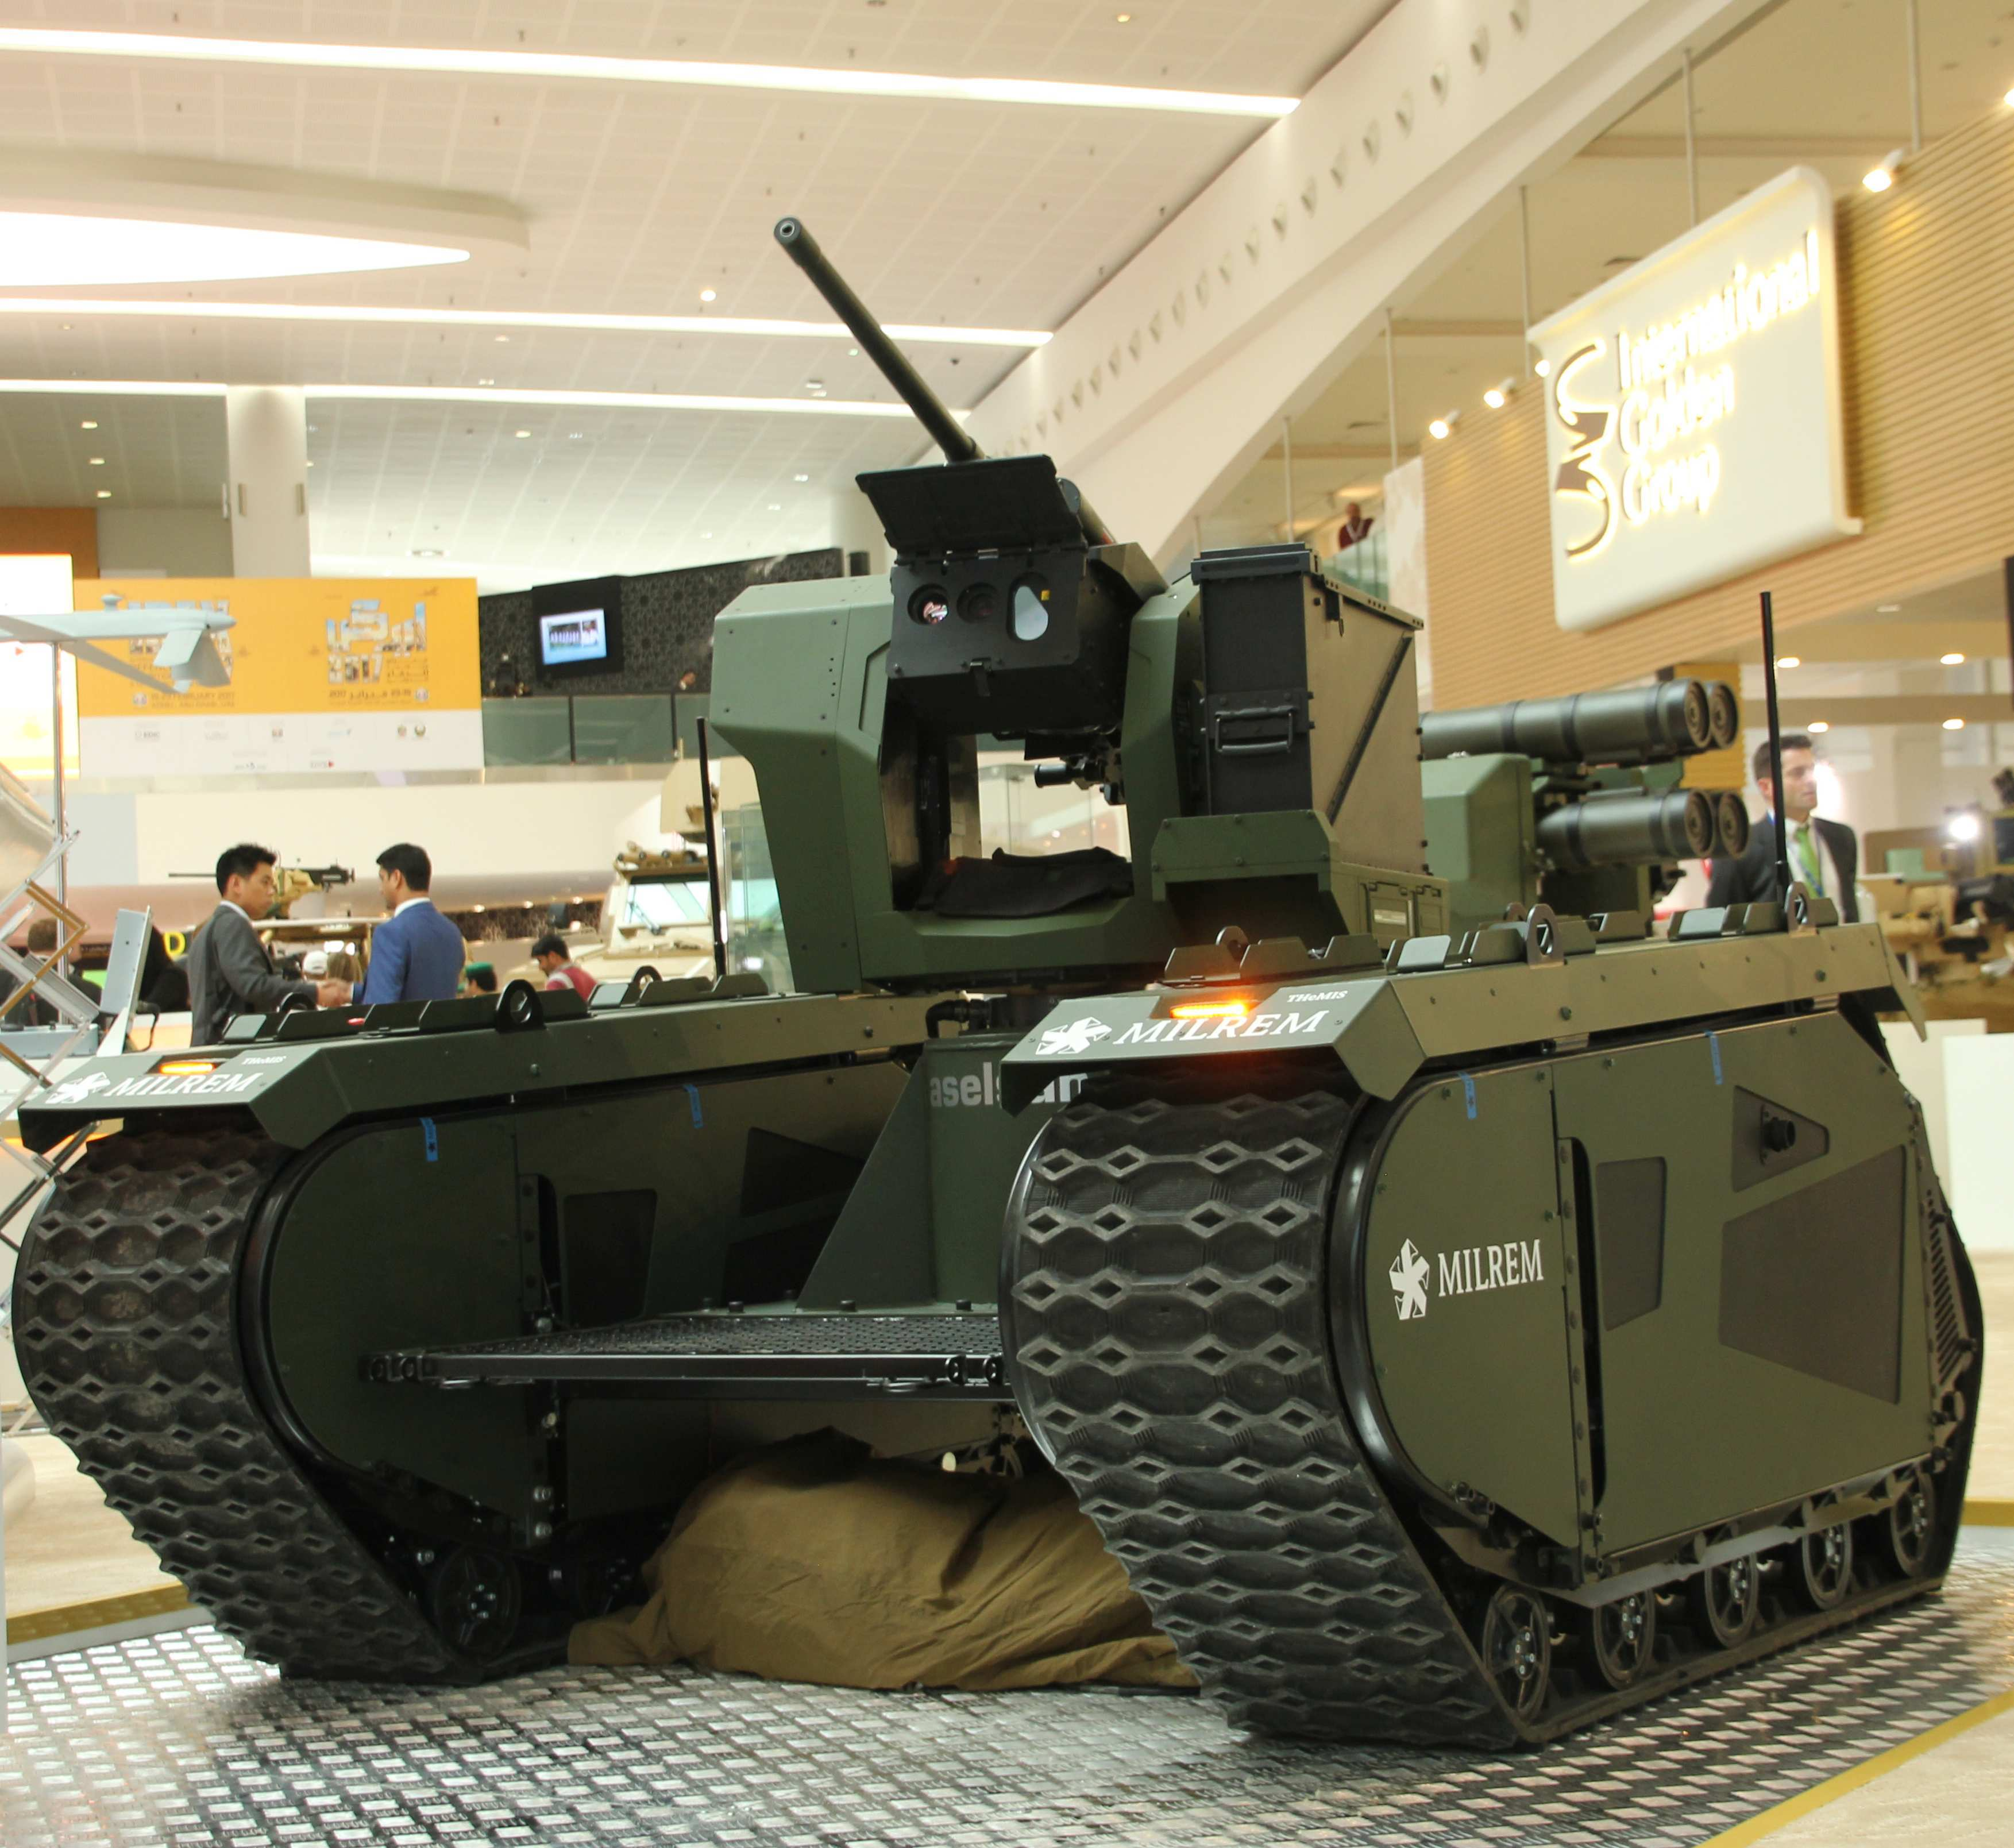 The joint product of IGG Aselsan and Milrem features the THeMIS unmanned ground vehicle with Aselsan's SARP remote weapon station. (Photo: Business Wire)